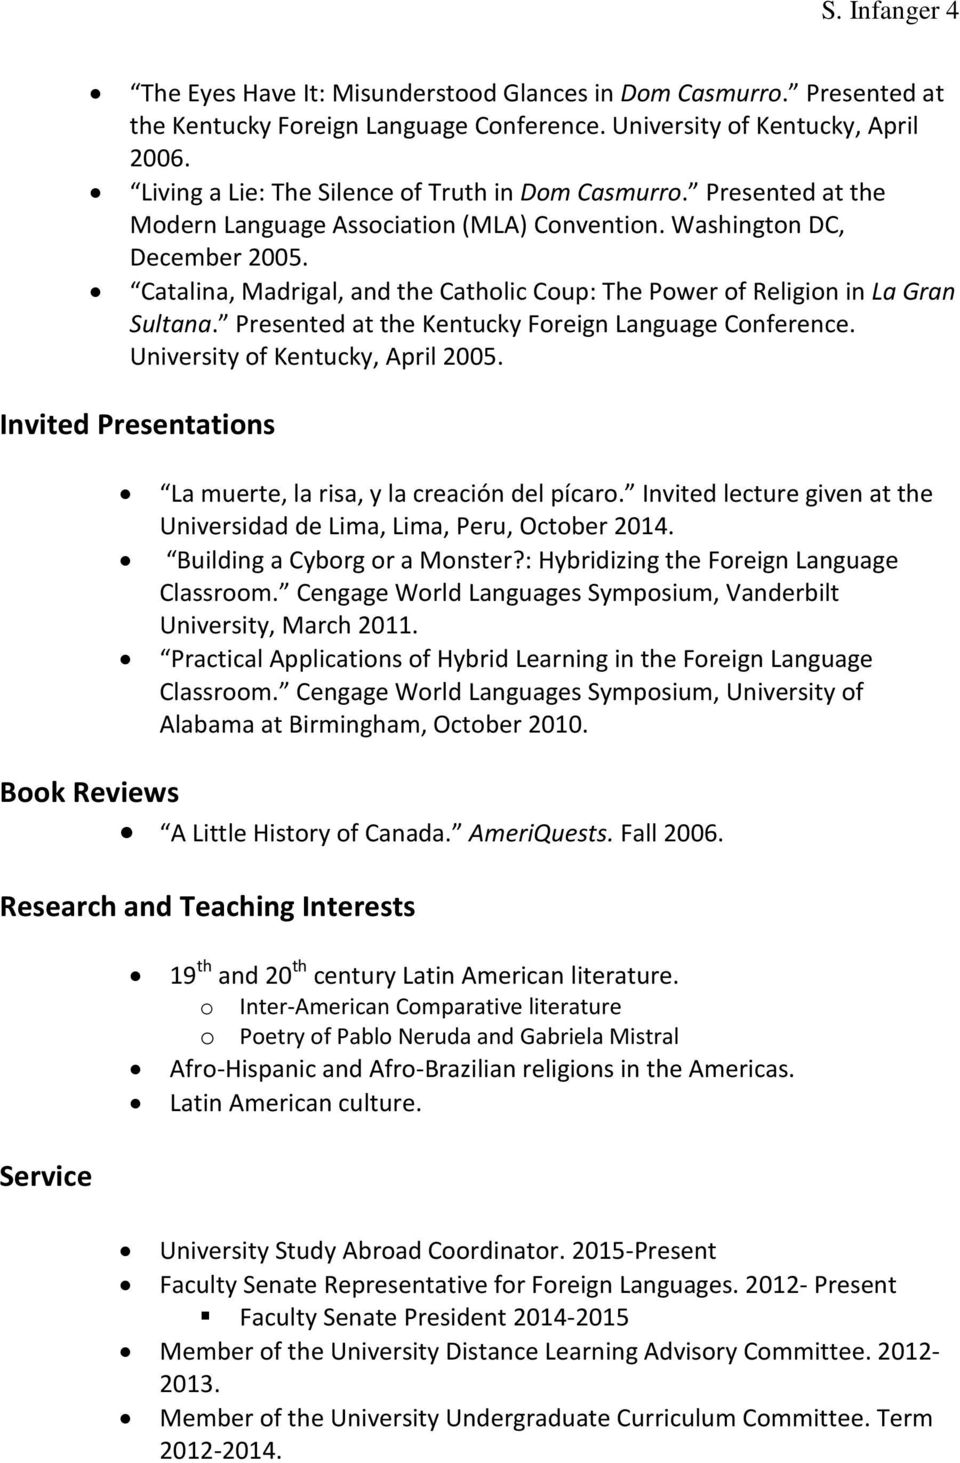 Catalina, Madrigal, and the Catholic Coup: The Power of Religion in La Gran Sultana. Presented at the Kentucky Foreign Language Conference. University of Kentucky, April 2005.